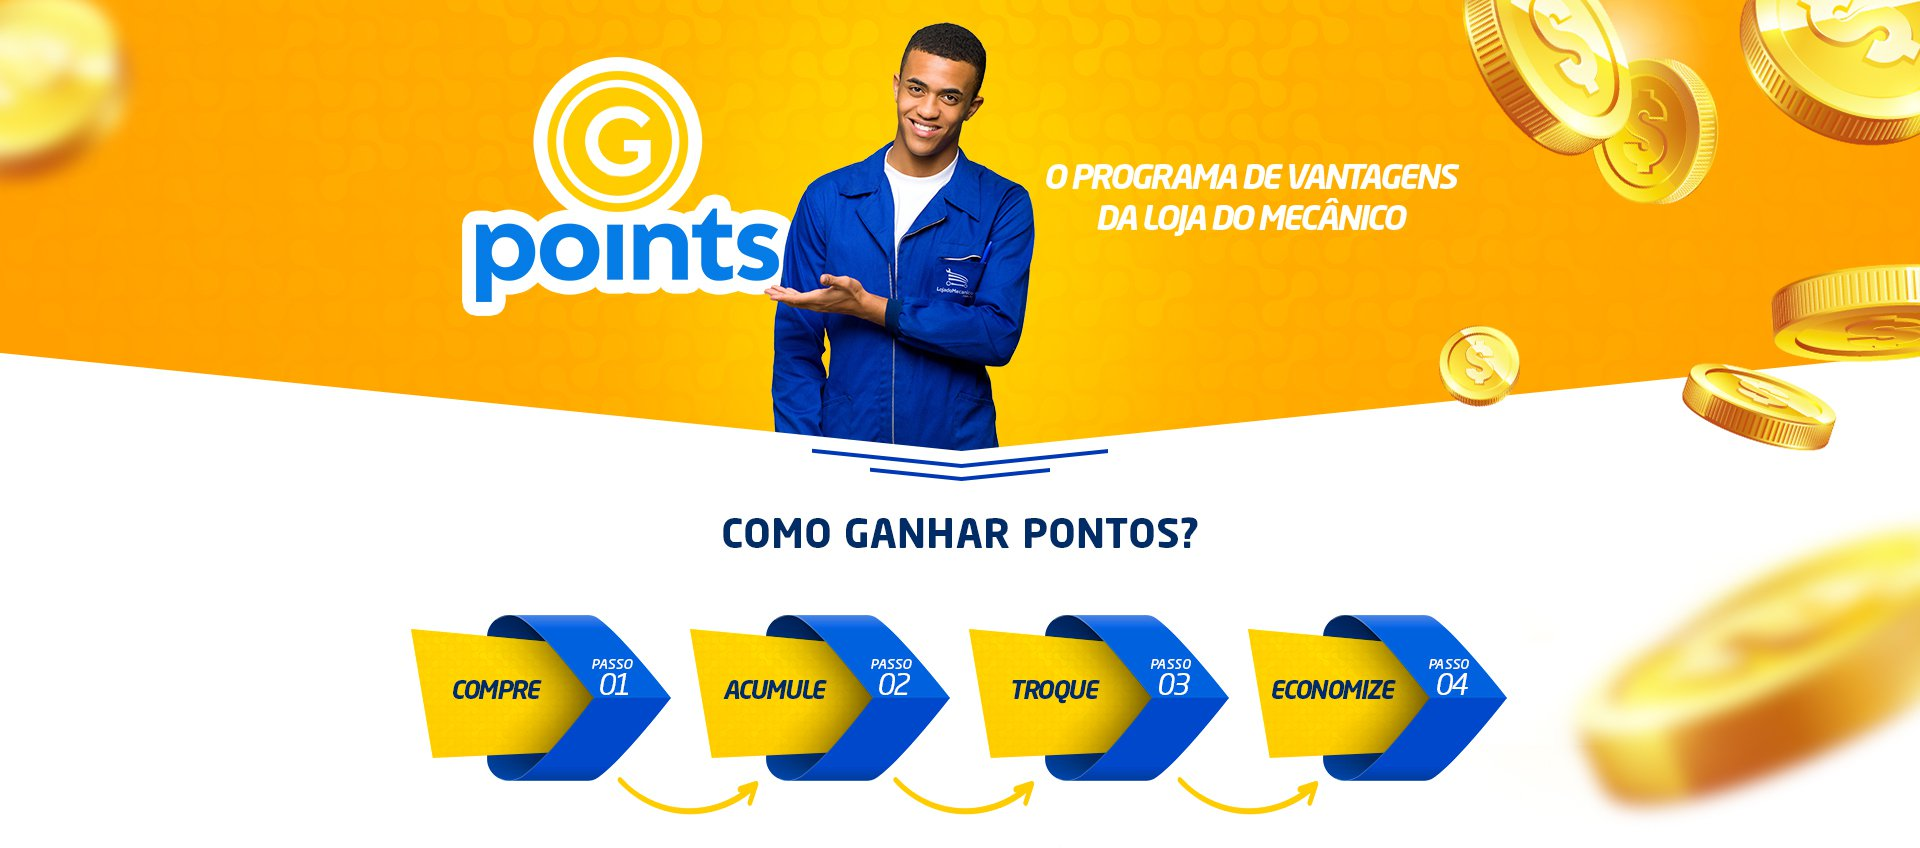 Gpoints